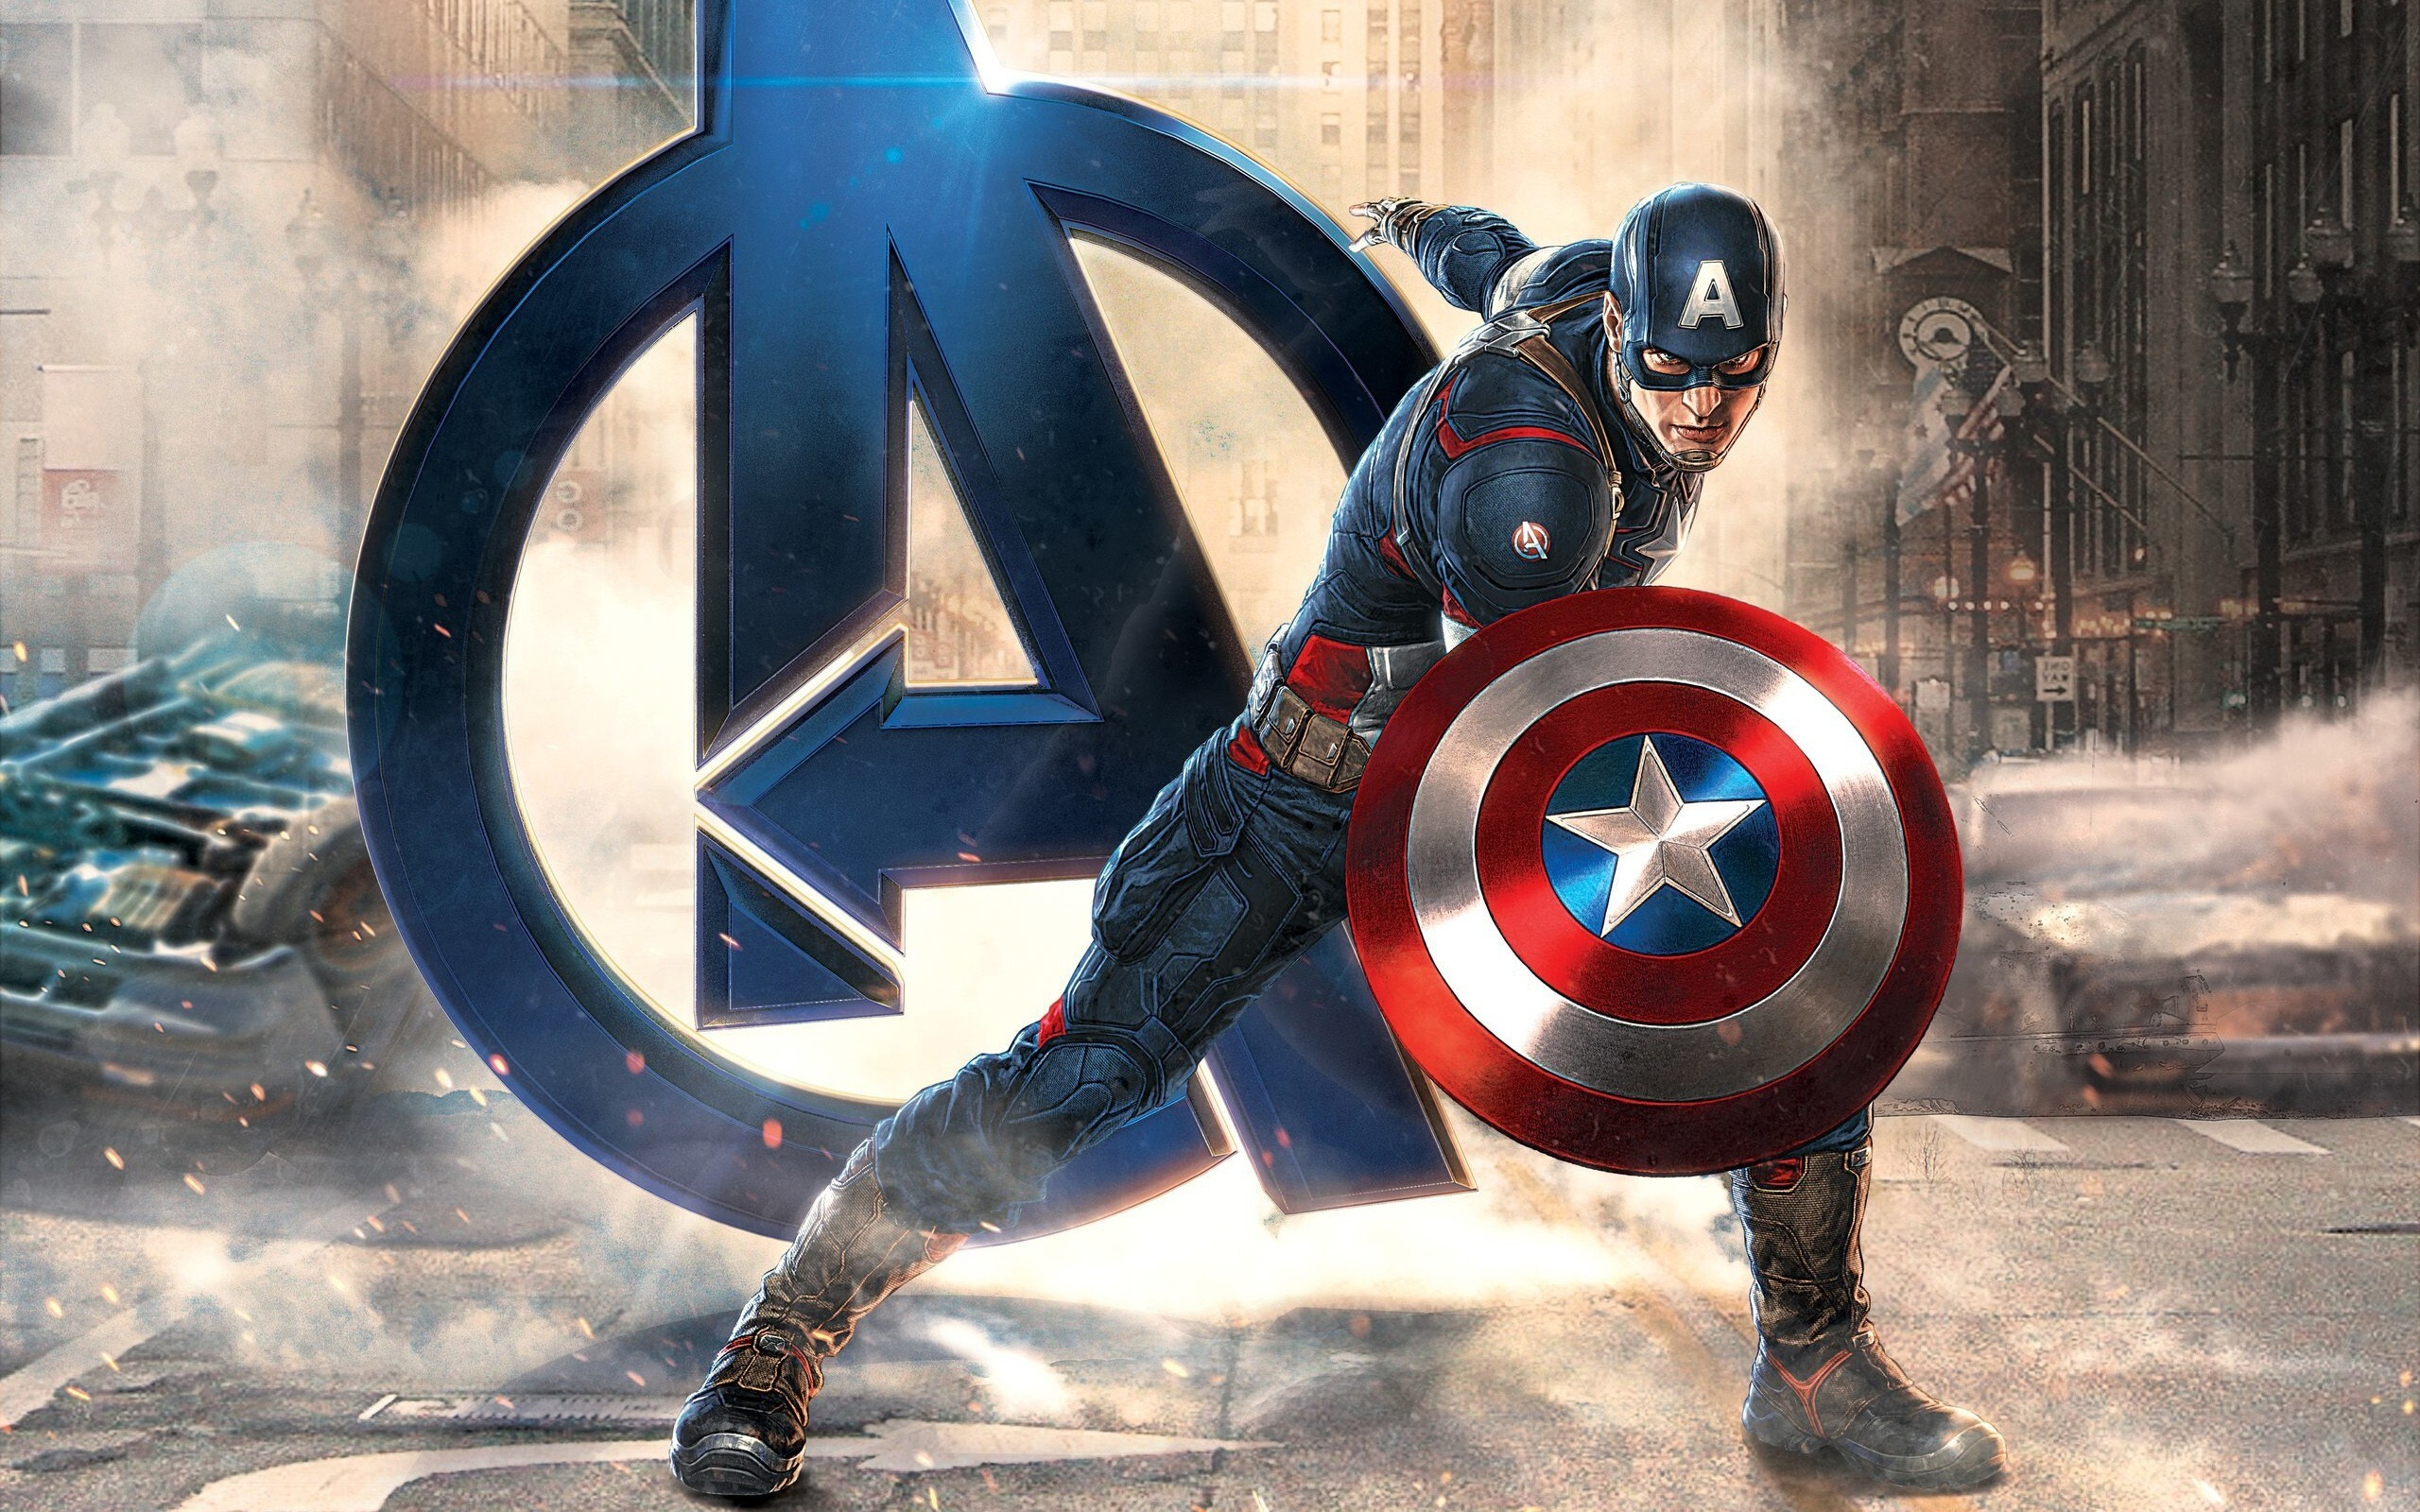 2560x1600 Captain America Avengers 2560x1600 Resolution Hd 4k